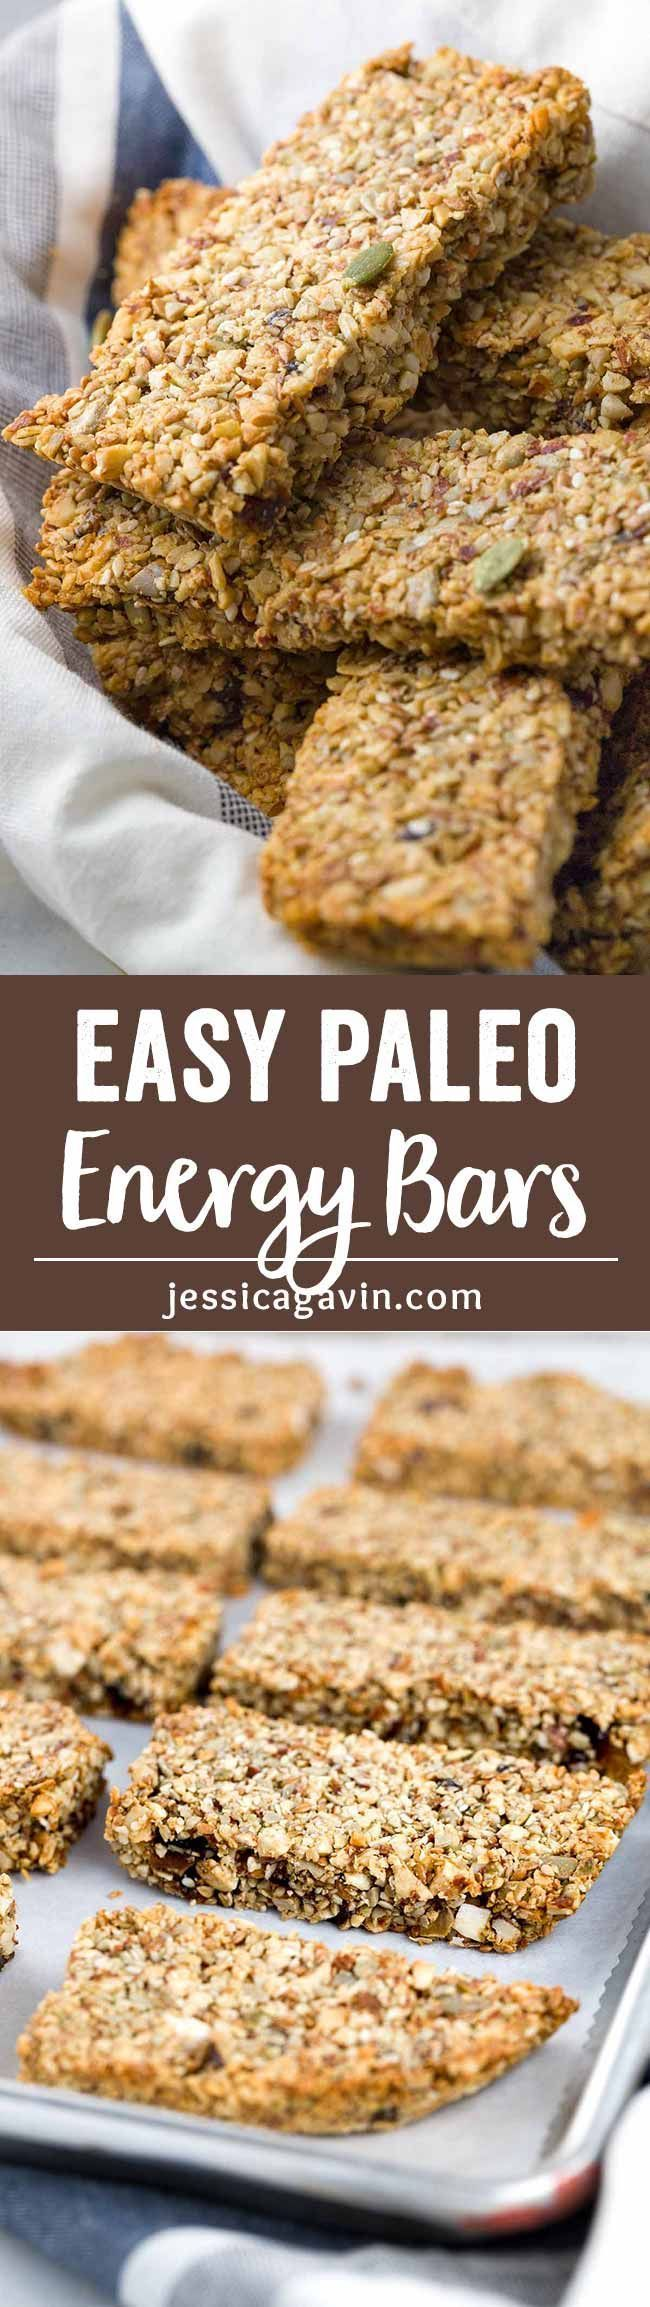 Baked Paleo Energy Bars - This recipe has a mixture of ground nuts, seeds, and a touch of maple syrup for a healthy portable snack bar on the go!  via /foodiegavin/